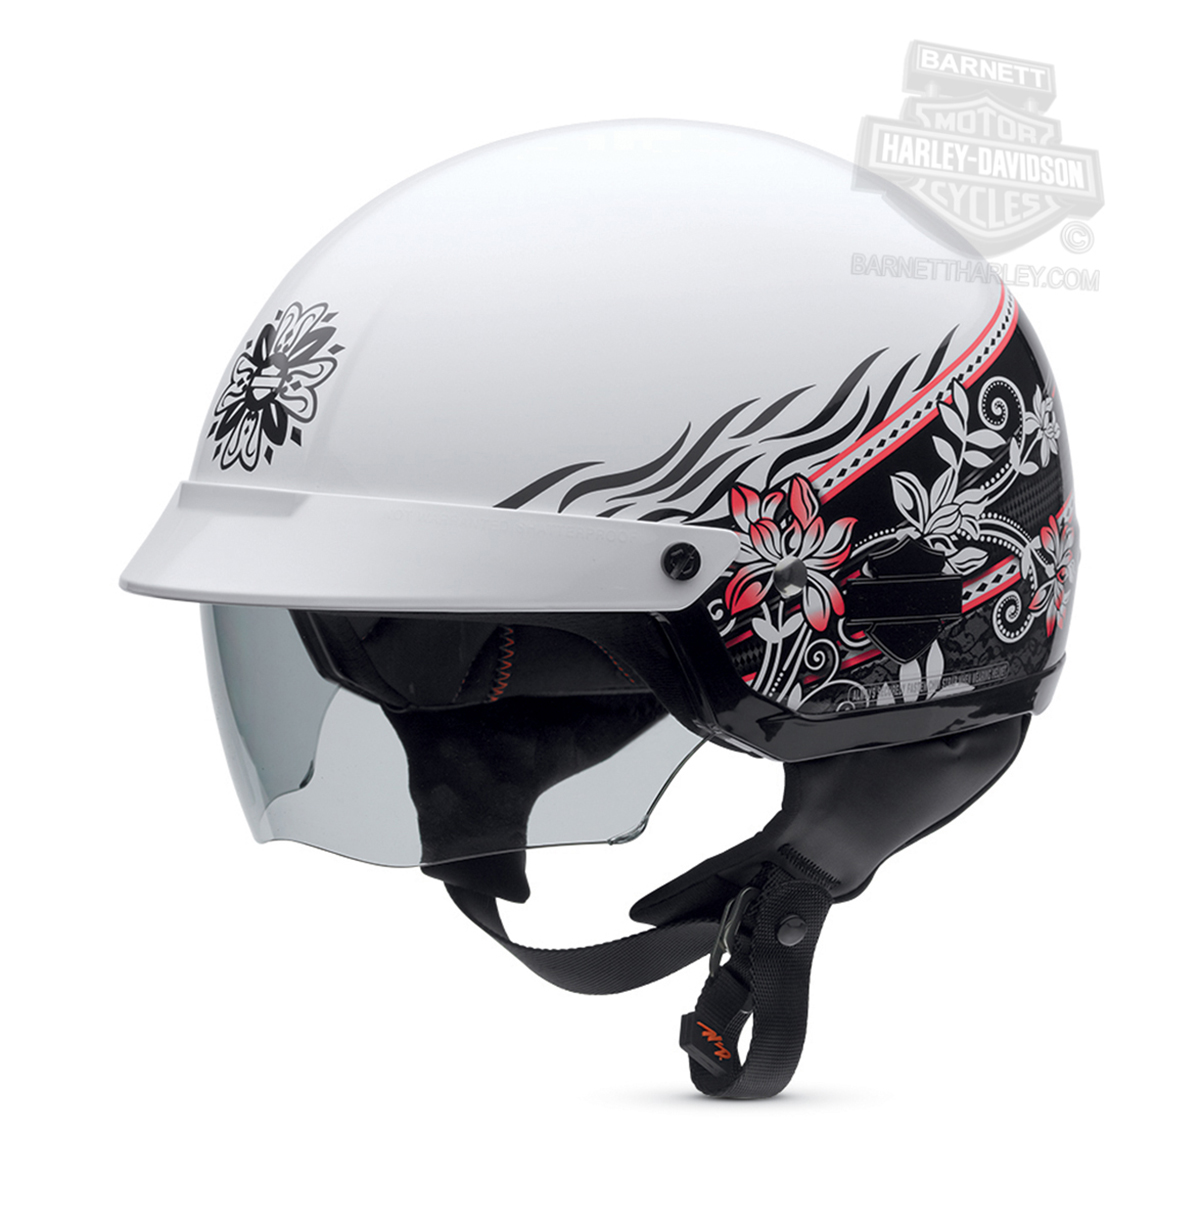 97316-15vw - harley-davidson® womens cascade flower graphics with